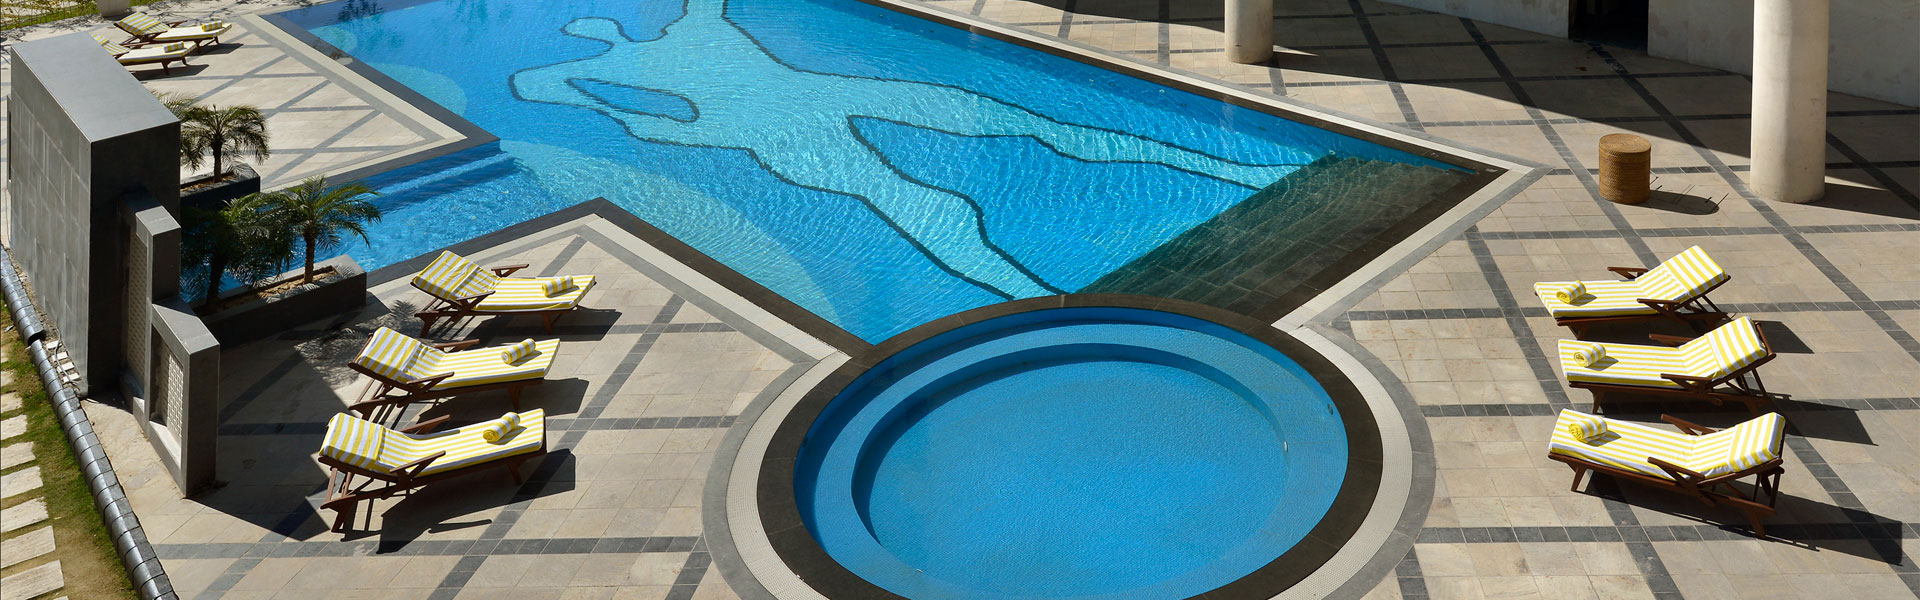 The lalit chandigarh luxury hotel in chandigarh - Chandigarh hotel with swimming pool ...